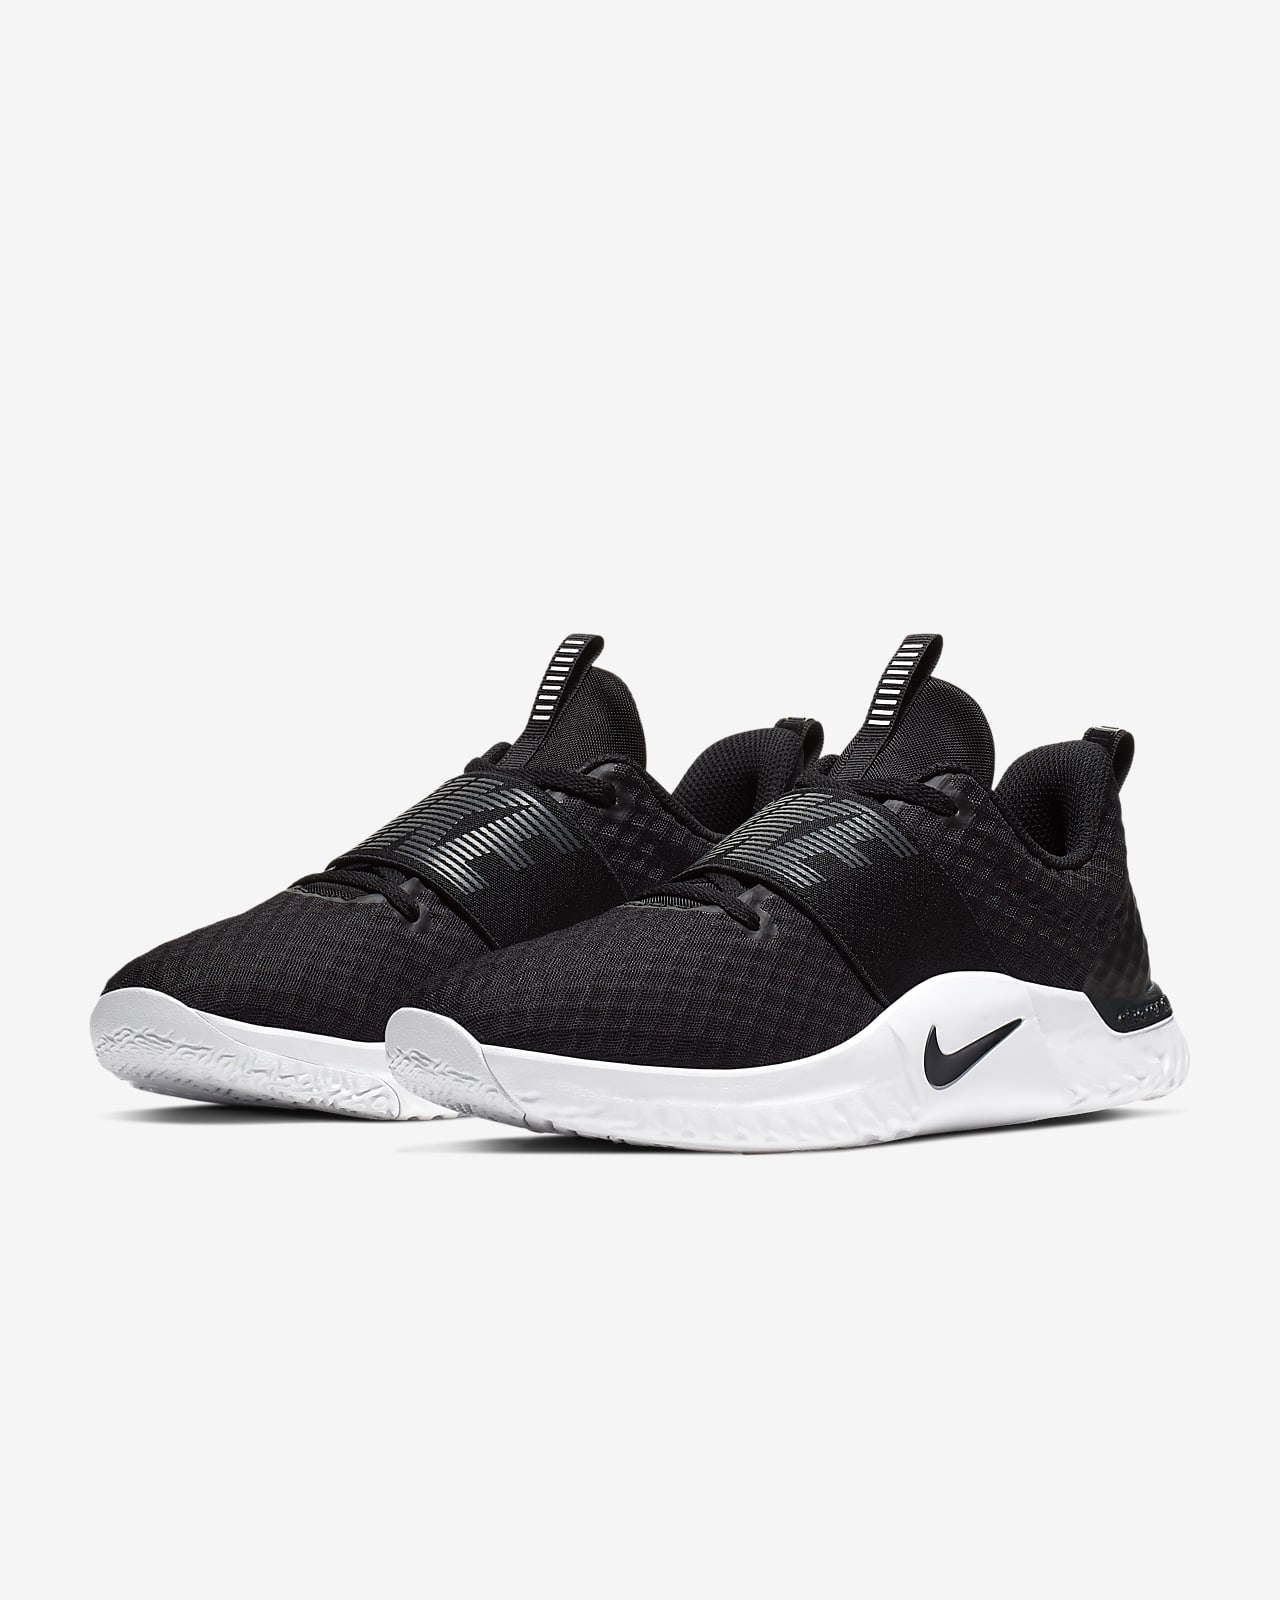 Adaptable Nike Air Max 270 Retro Black White Men's Casual